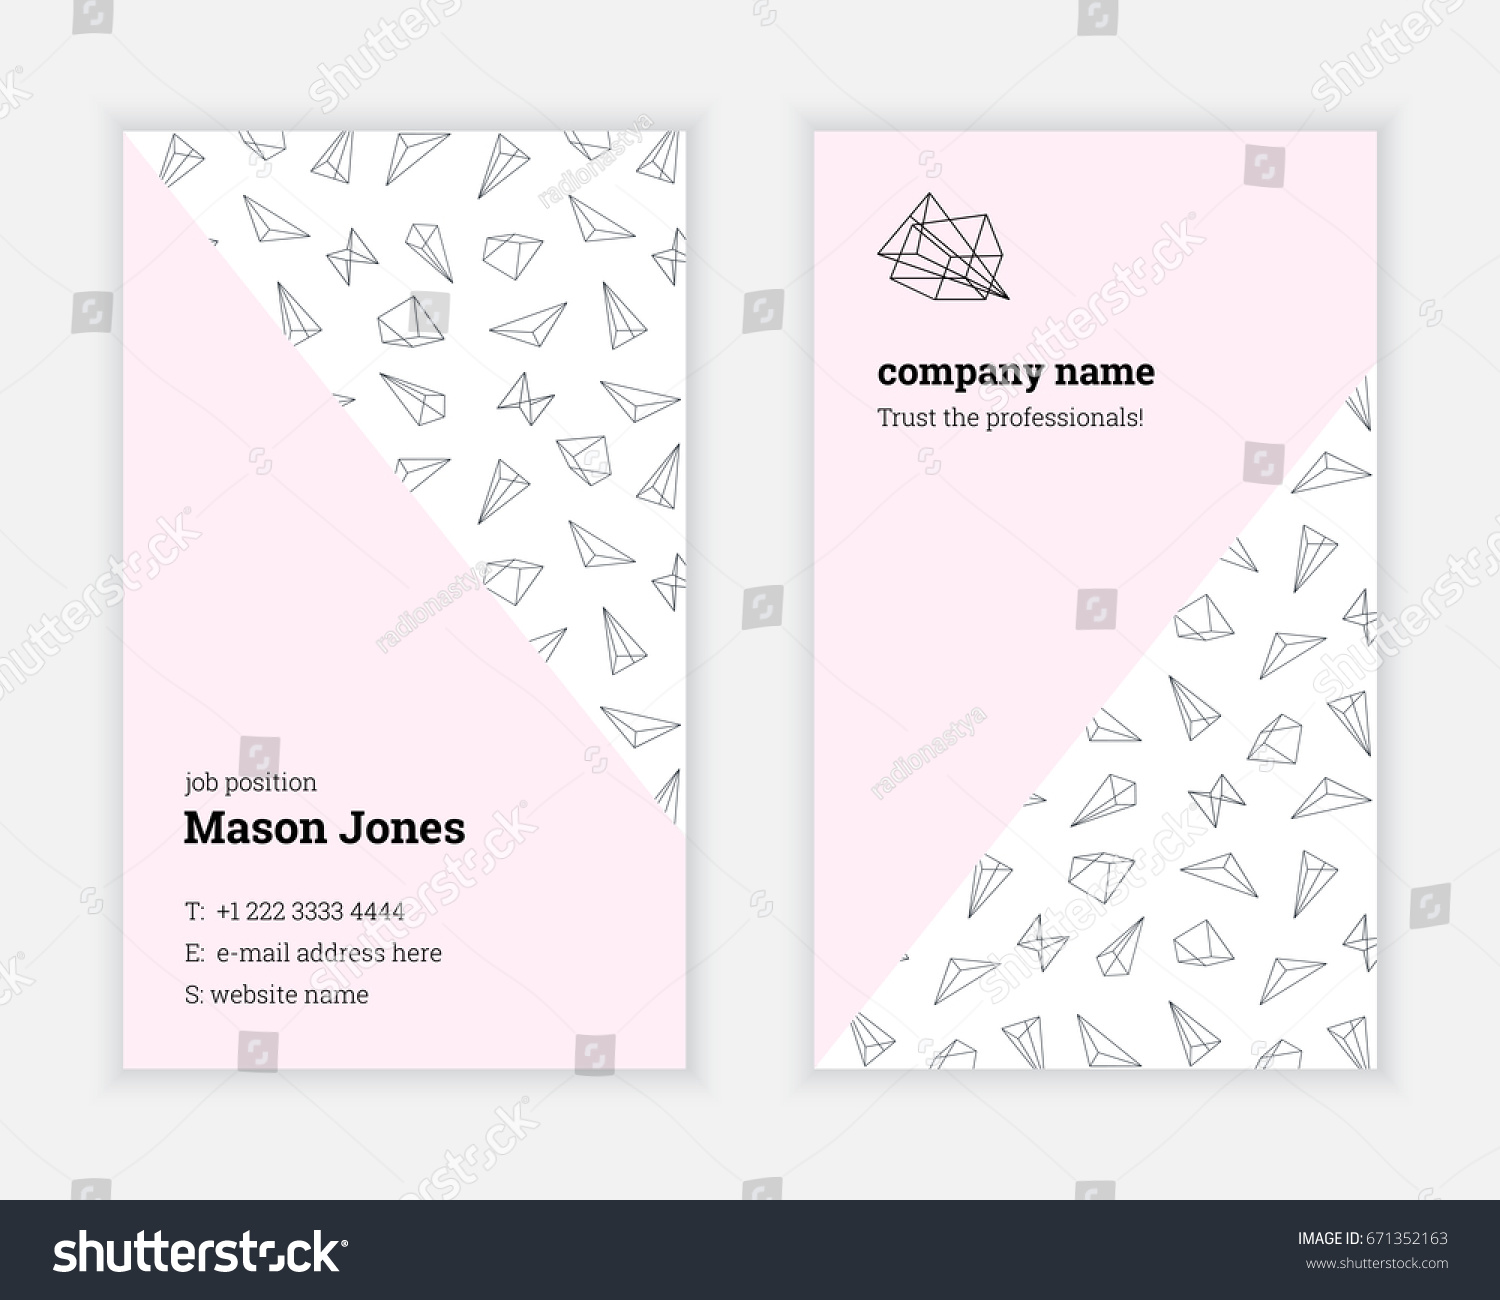 American Business Card Standard Size Choice Image - Card Design And ...